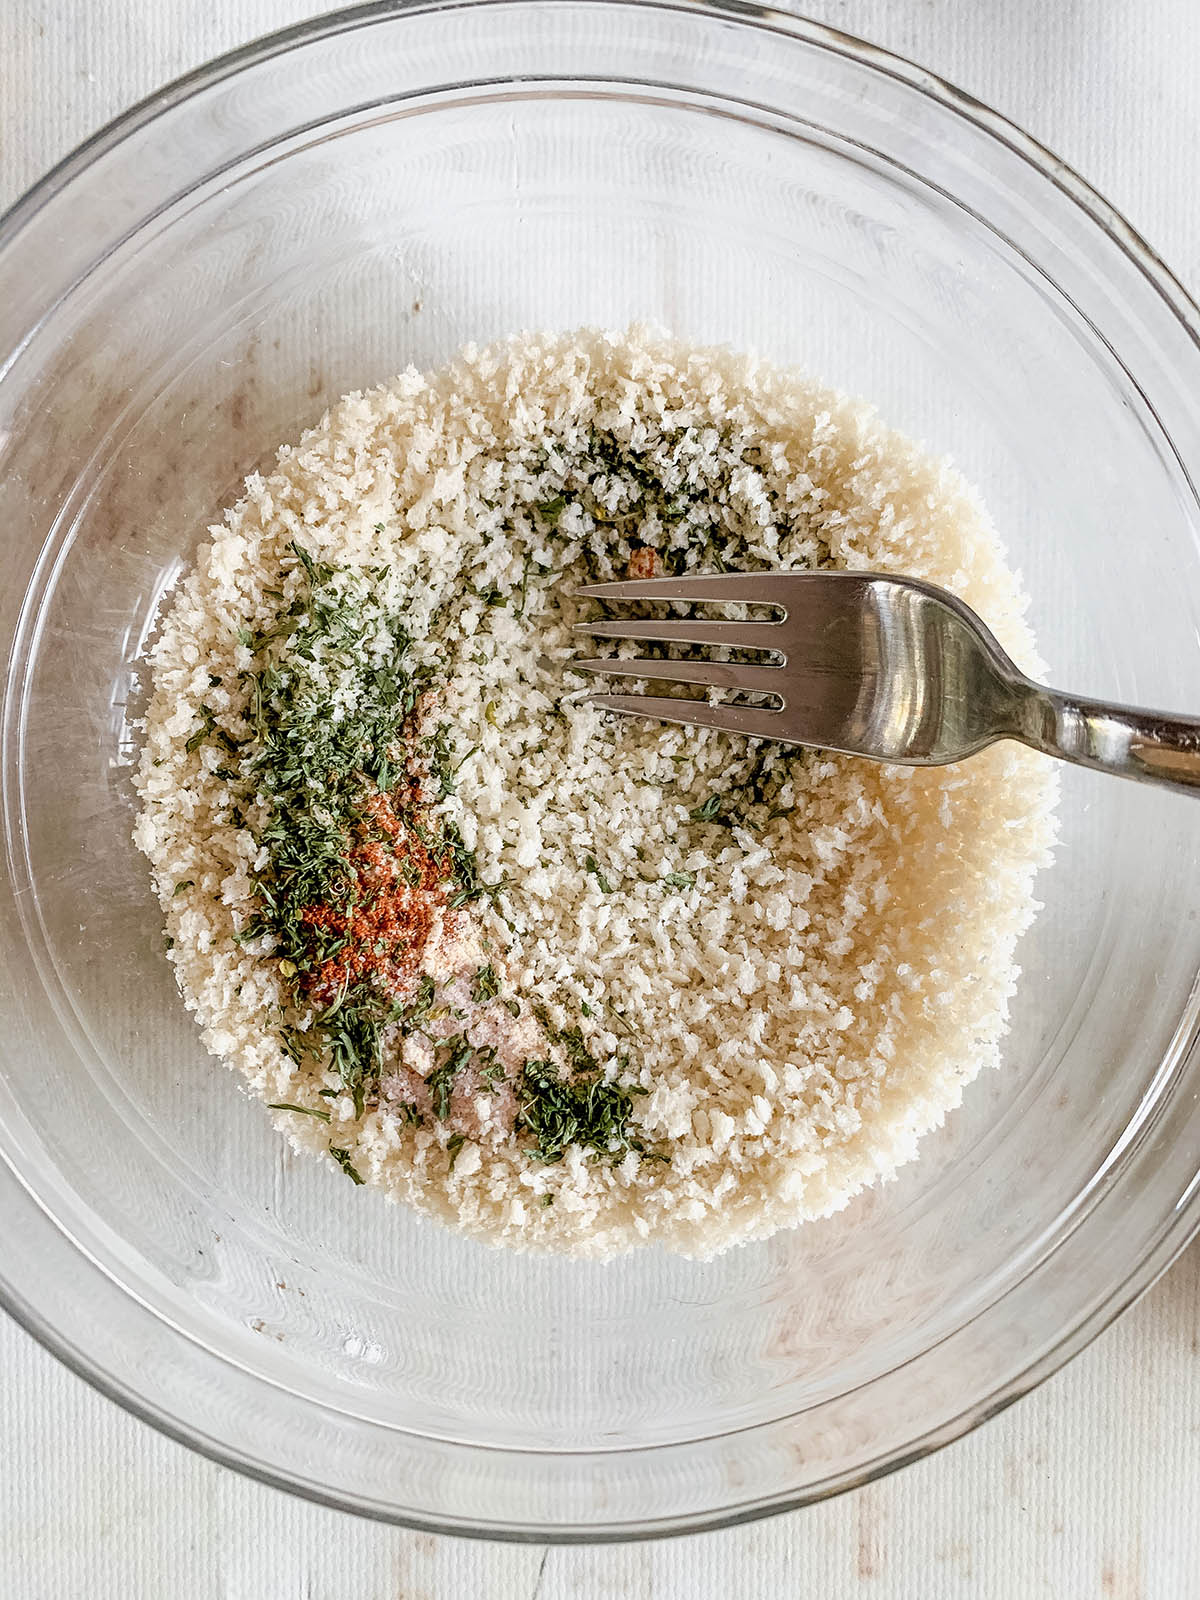 A small bowl with breadcrumbs and spices being mixed with a fork.